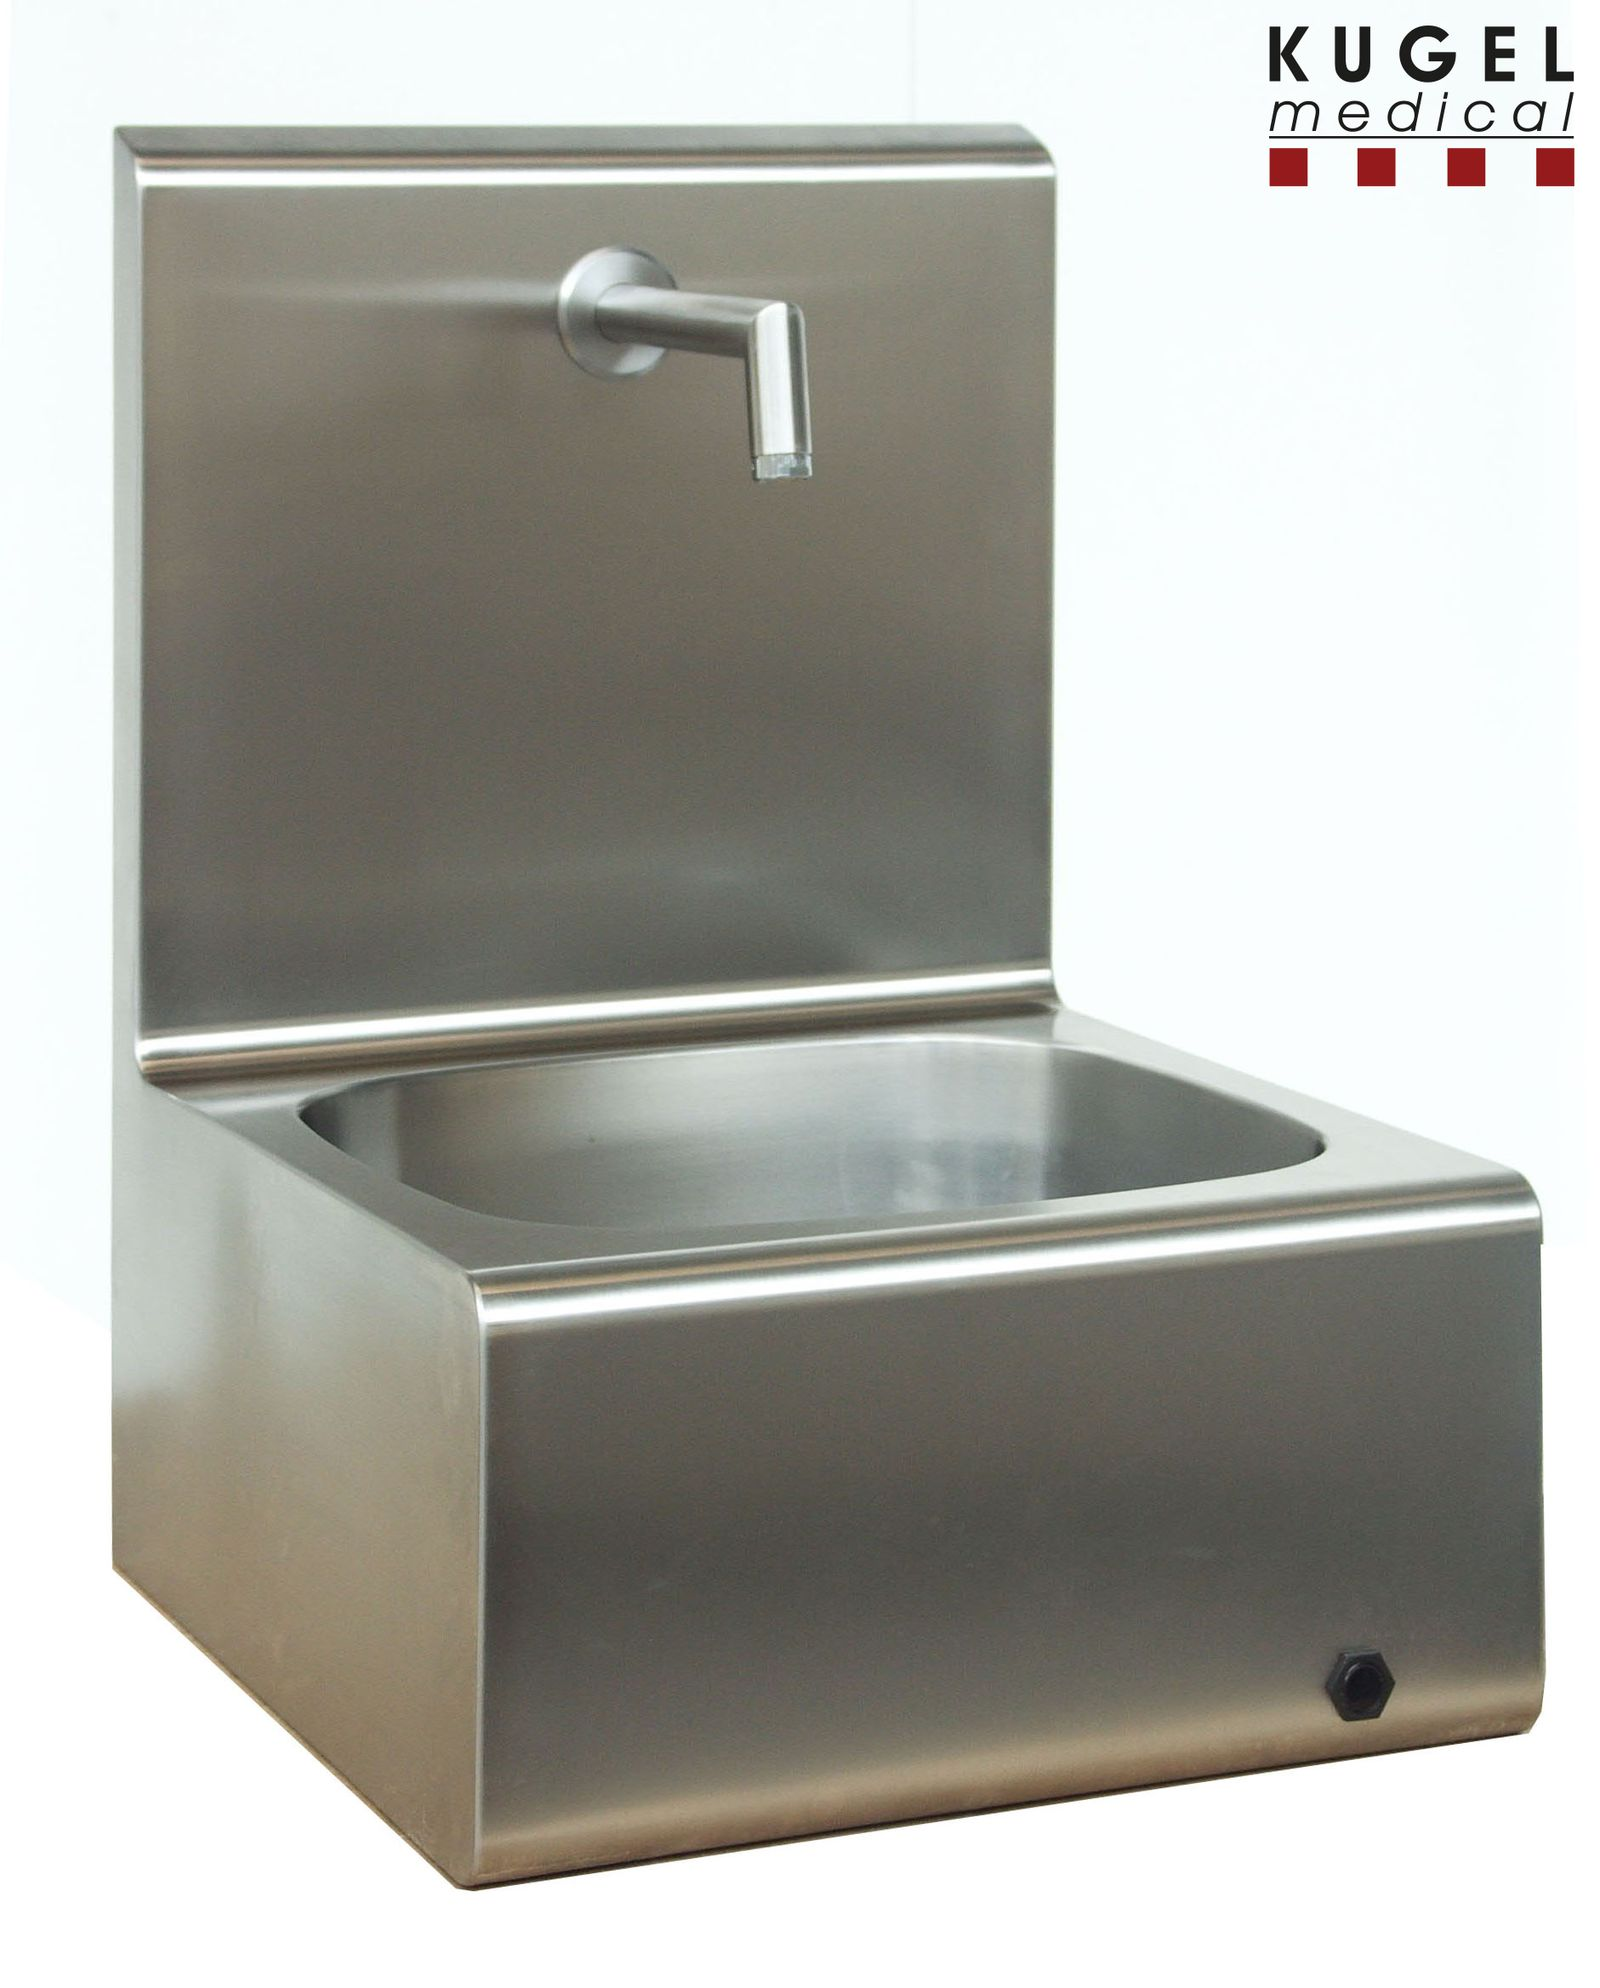 Wall Mounted Stainless Steel Sink Kugel Medical